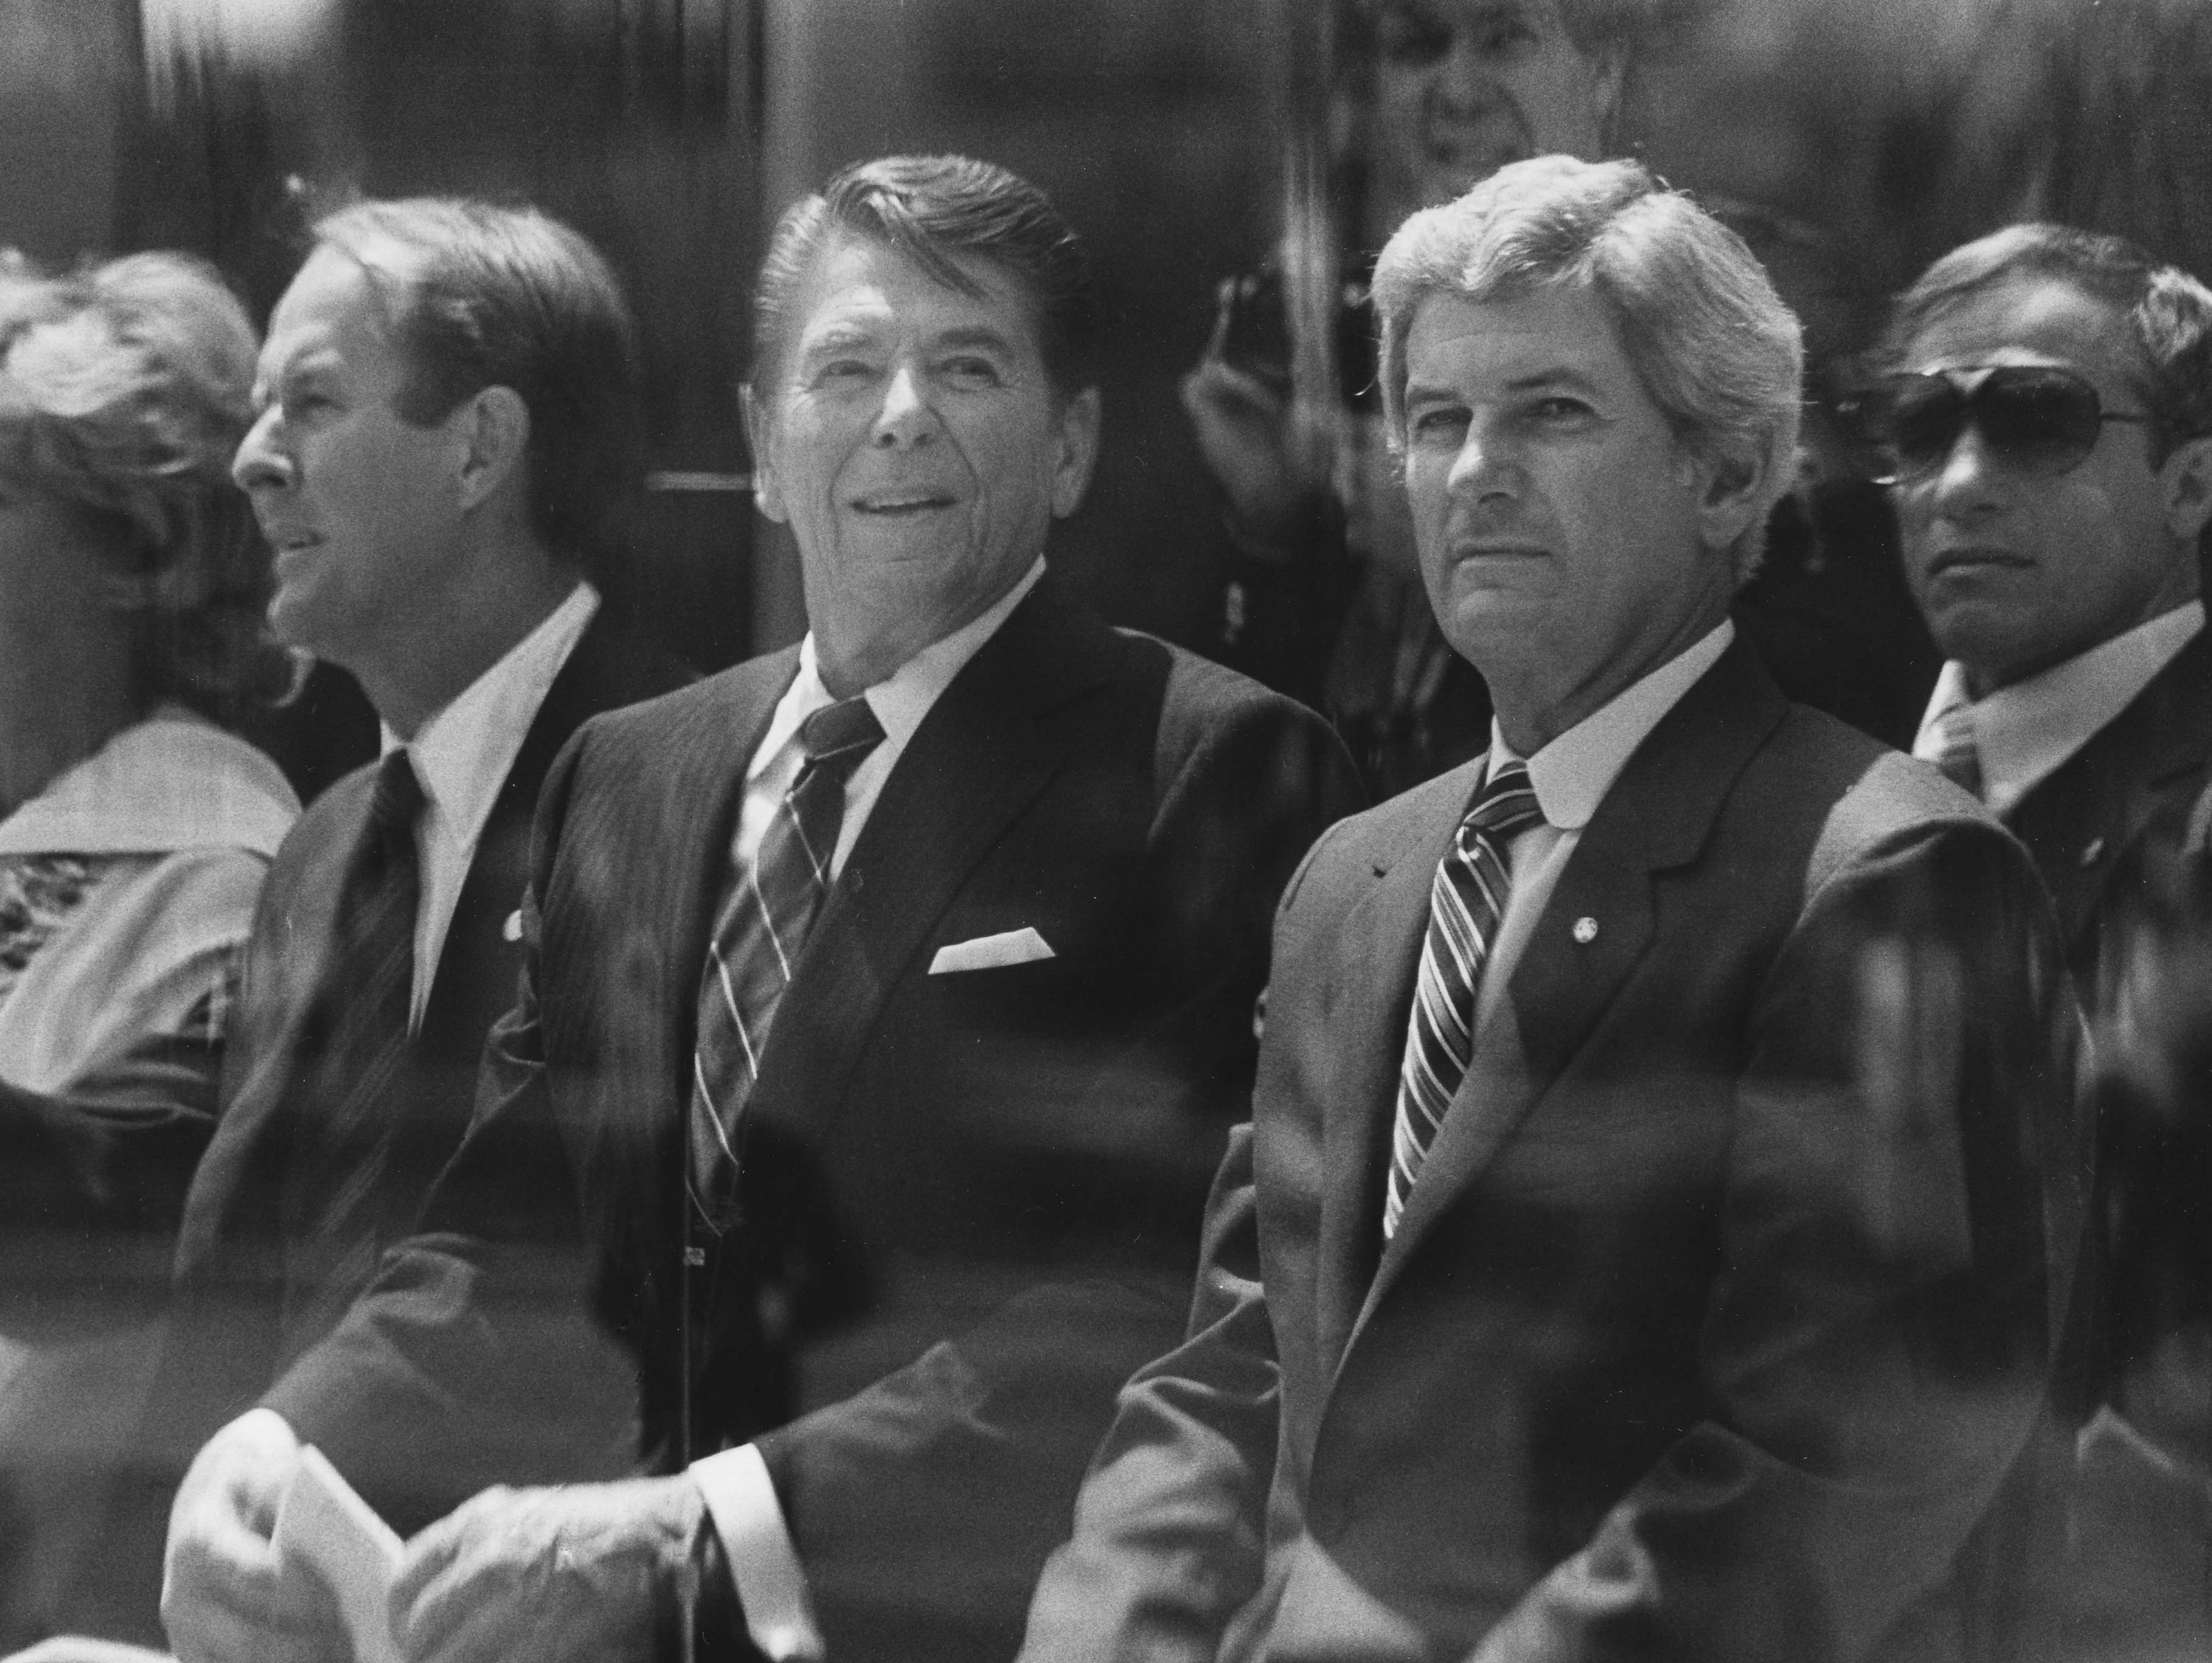 In a May 1, 1982, photograph, Dinah Shore, left, Gov. Lamar Alexander, President Ronald Reagan and Jake Butcher take part in the World's Fair opening ceremonies.